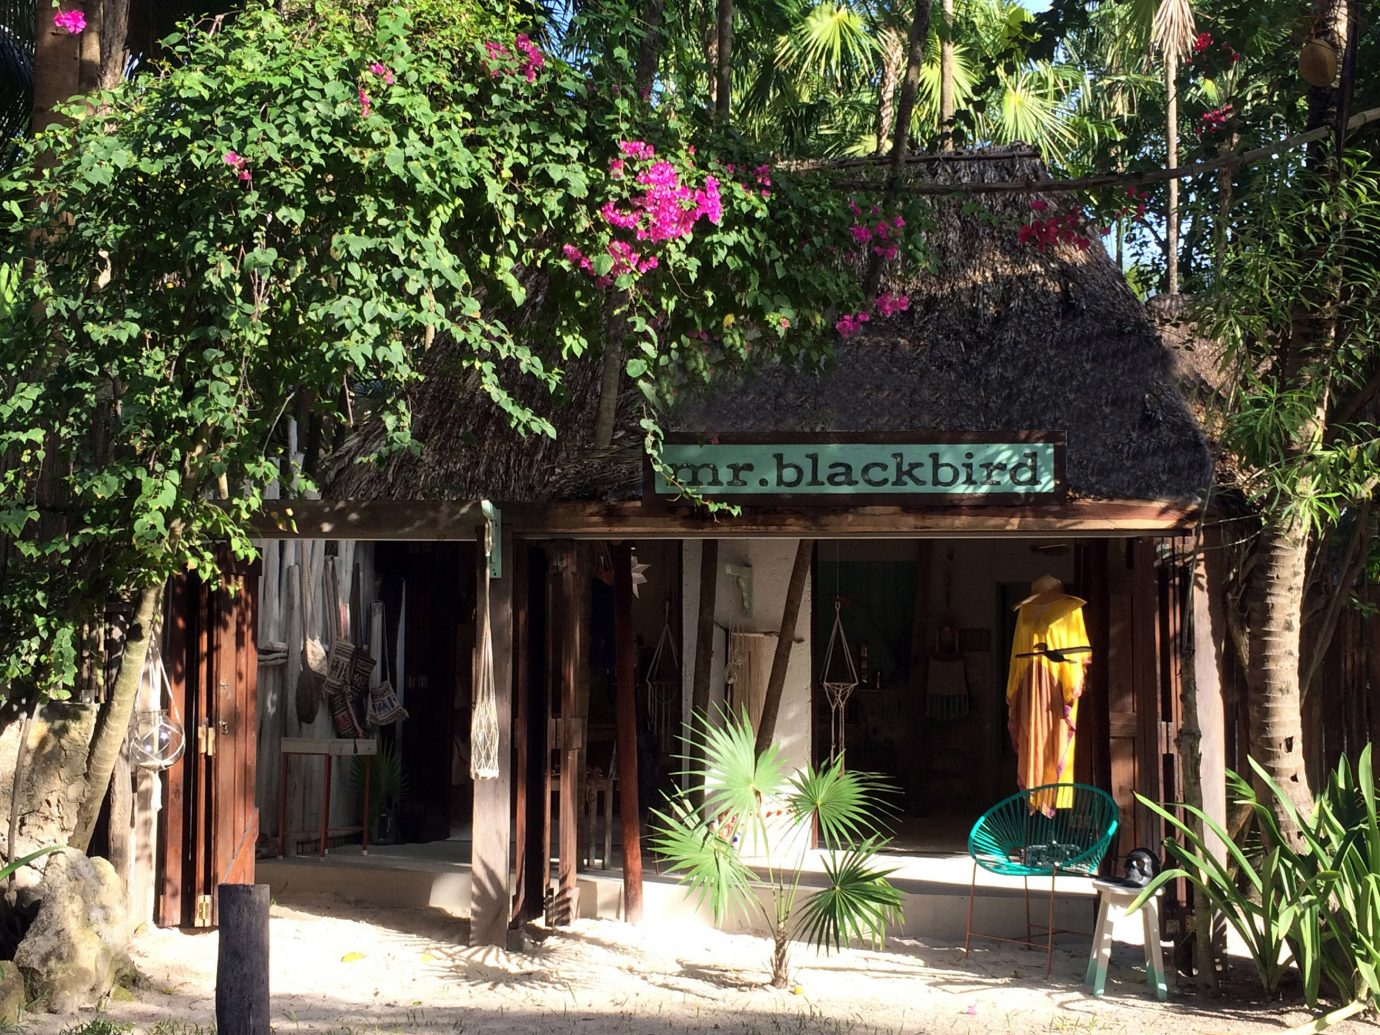 City Mexico Trip Ideas Tulum plant tree house arecales outdoor structure cottage flower